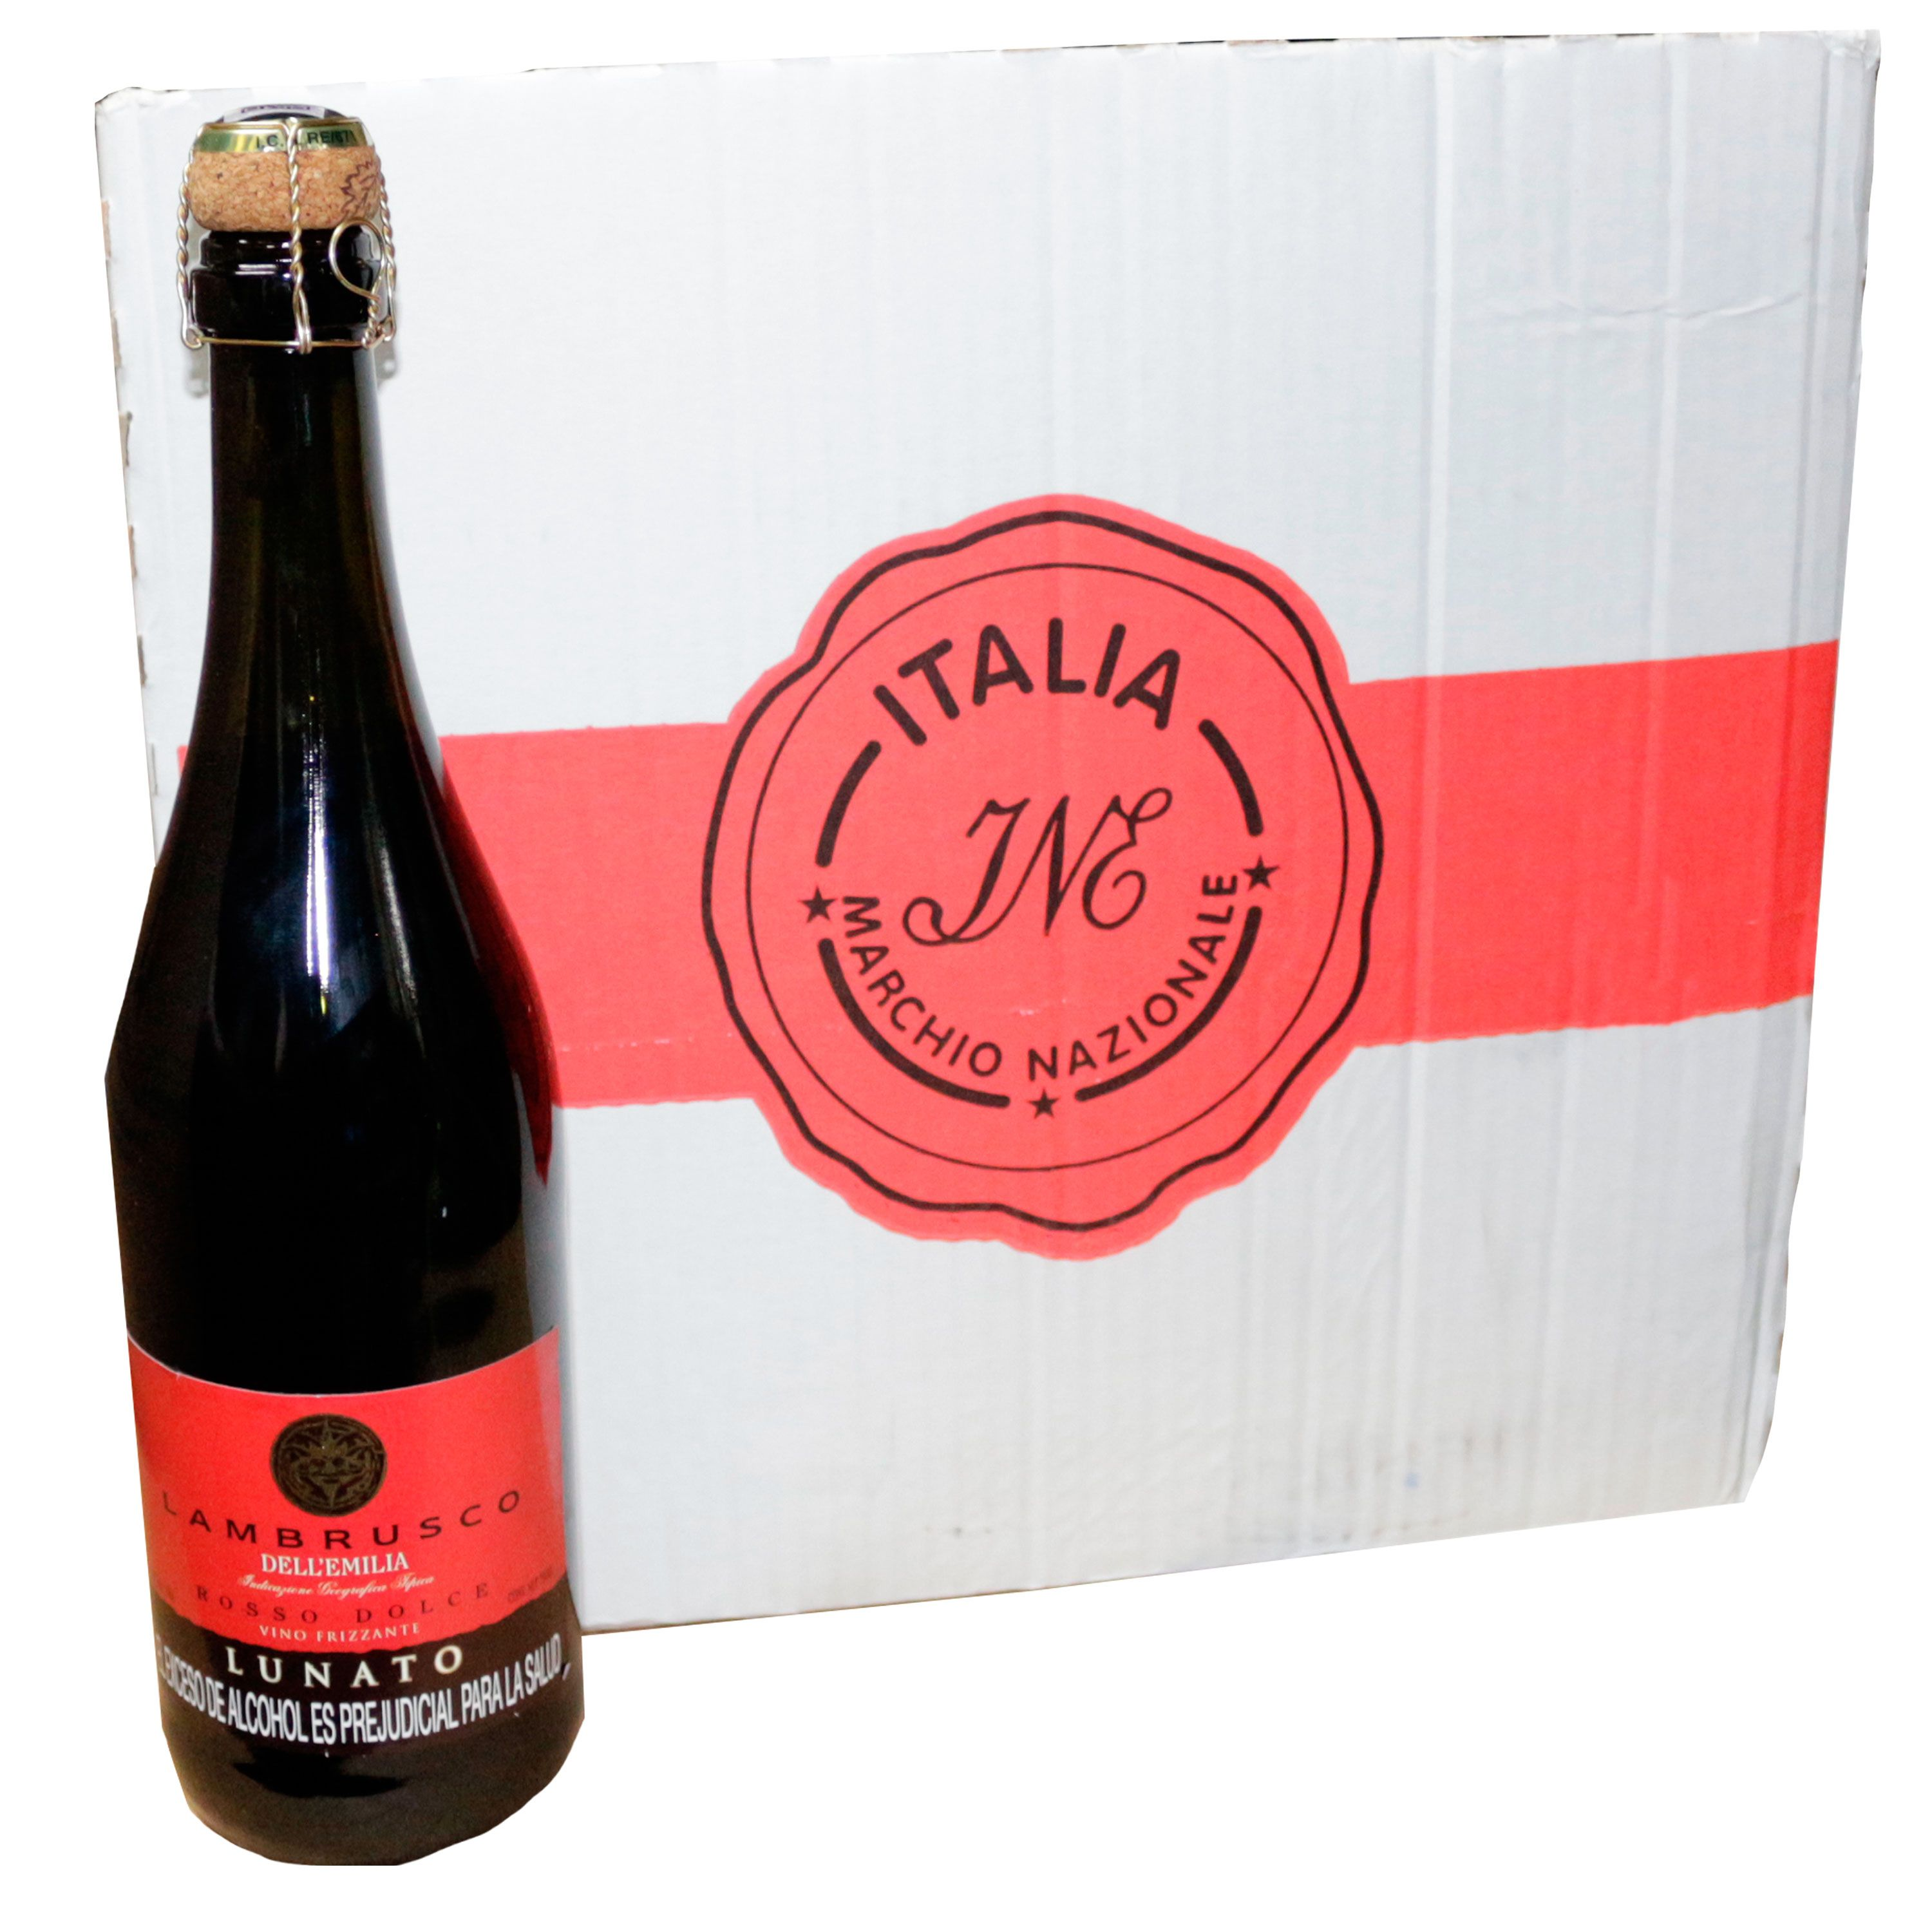 Otro Mas De La Familia Lambrusco Wine Bottle Bottle Wine